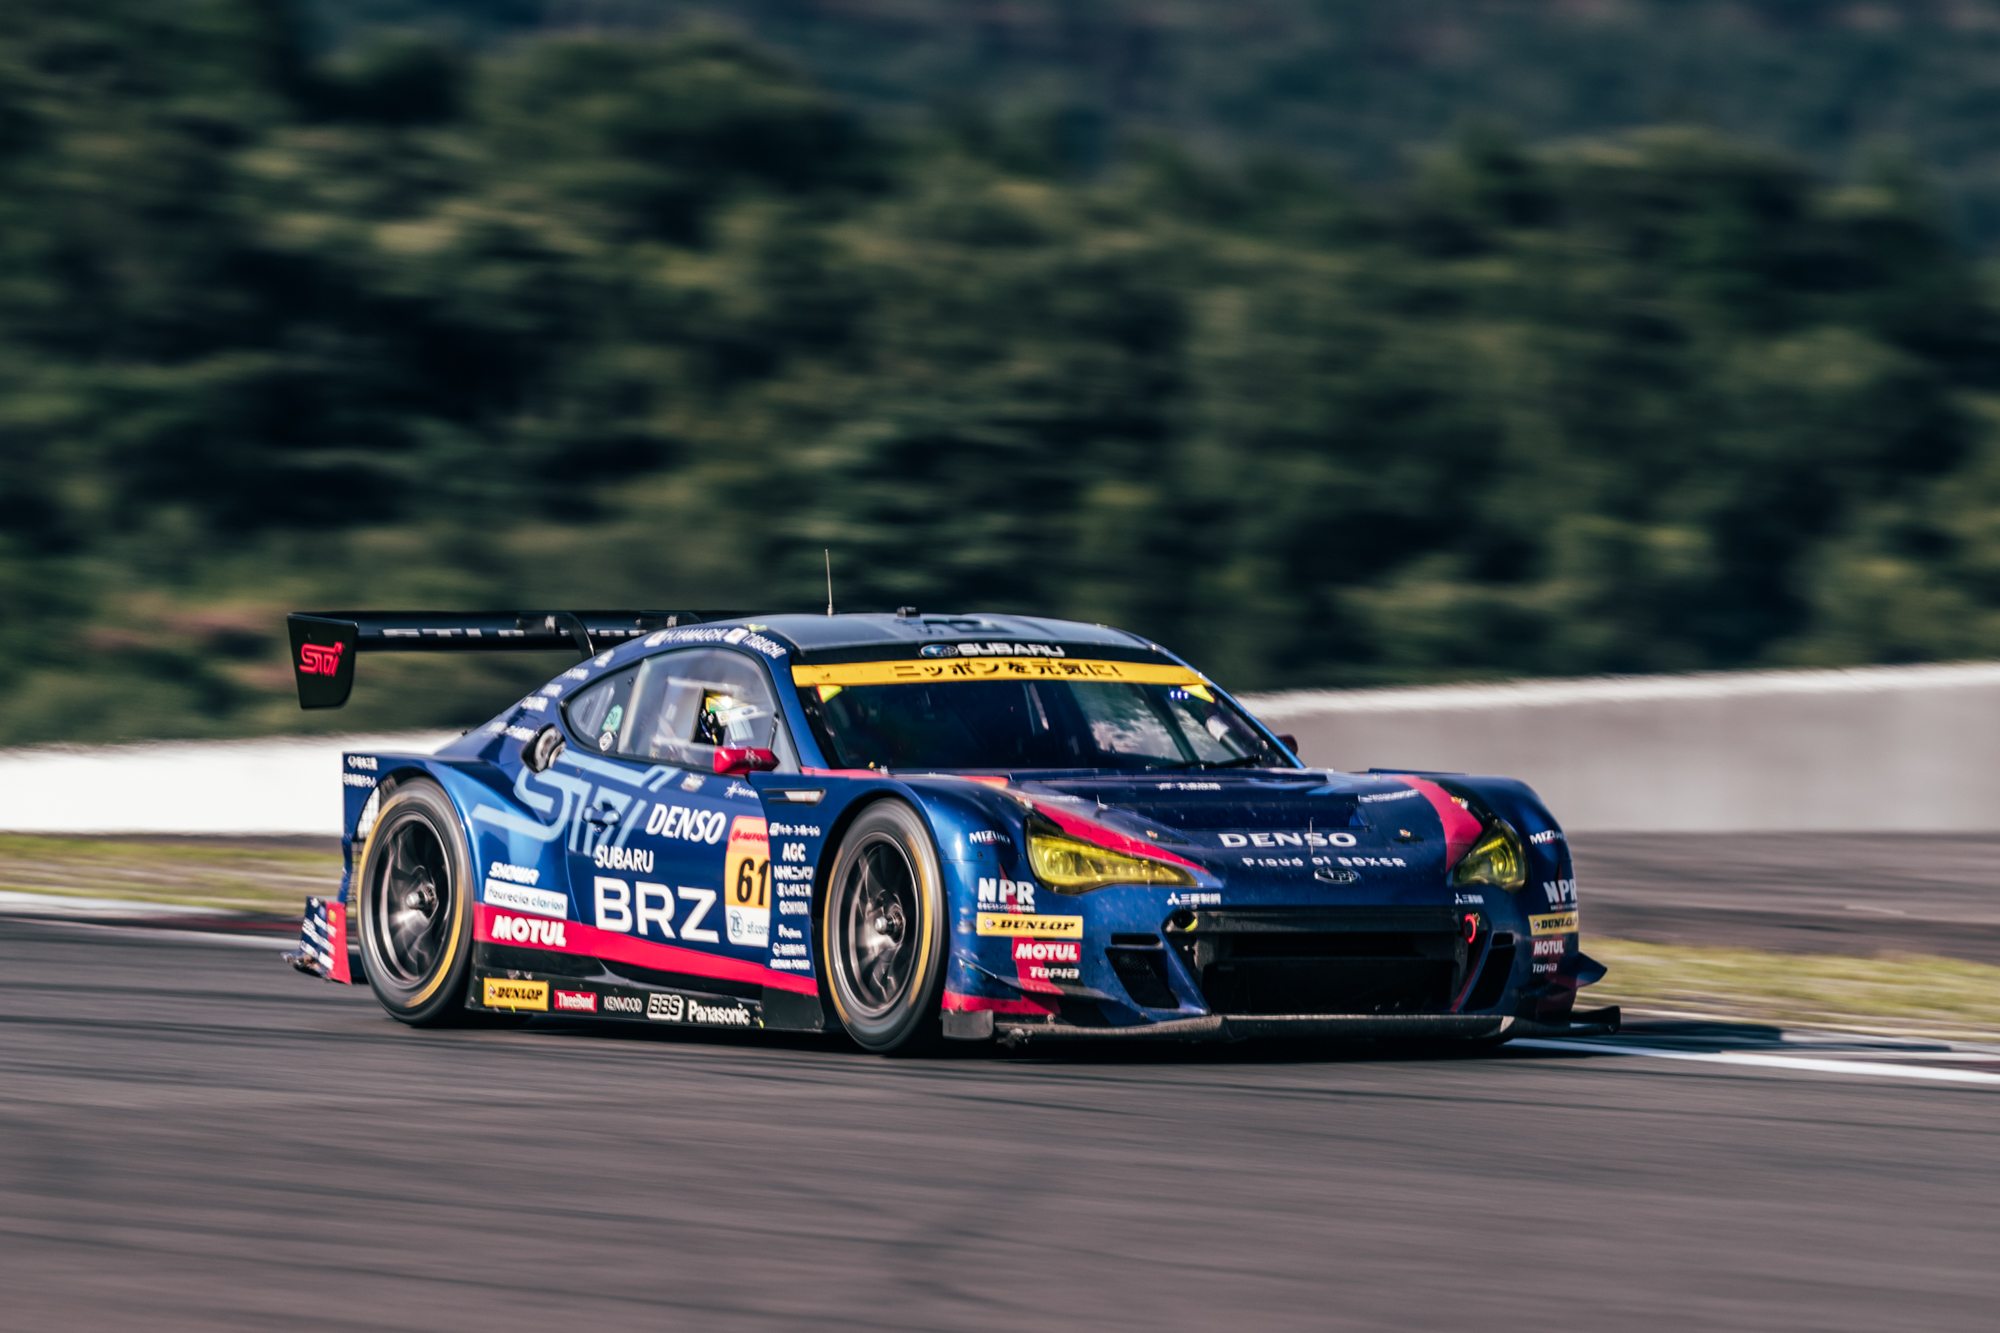 STI, and with-it Subaru, has a strong background in motorsport. What is the impact of motorsport on the brand and how relevant is that link today?